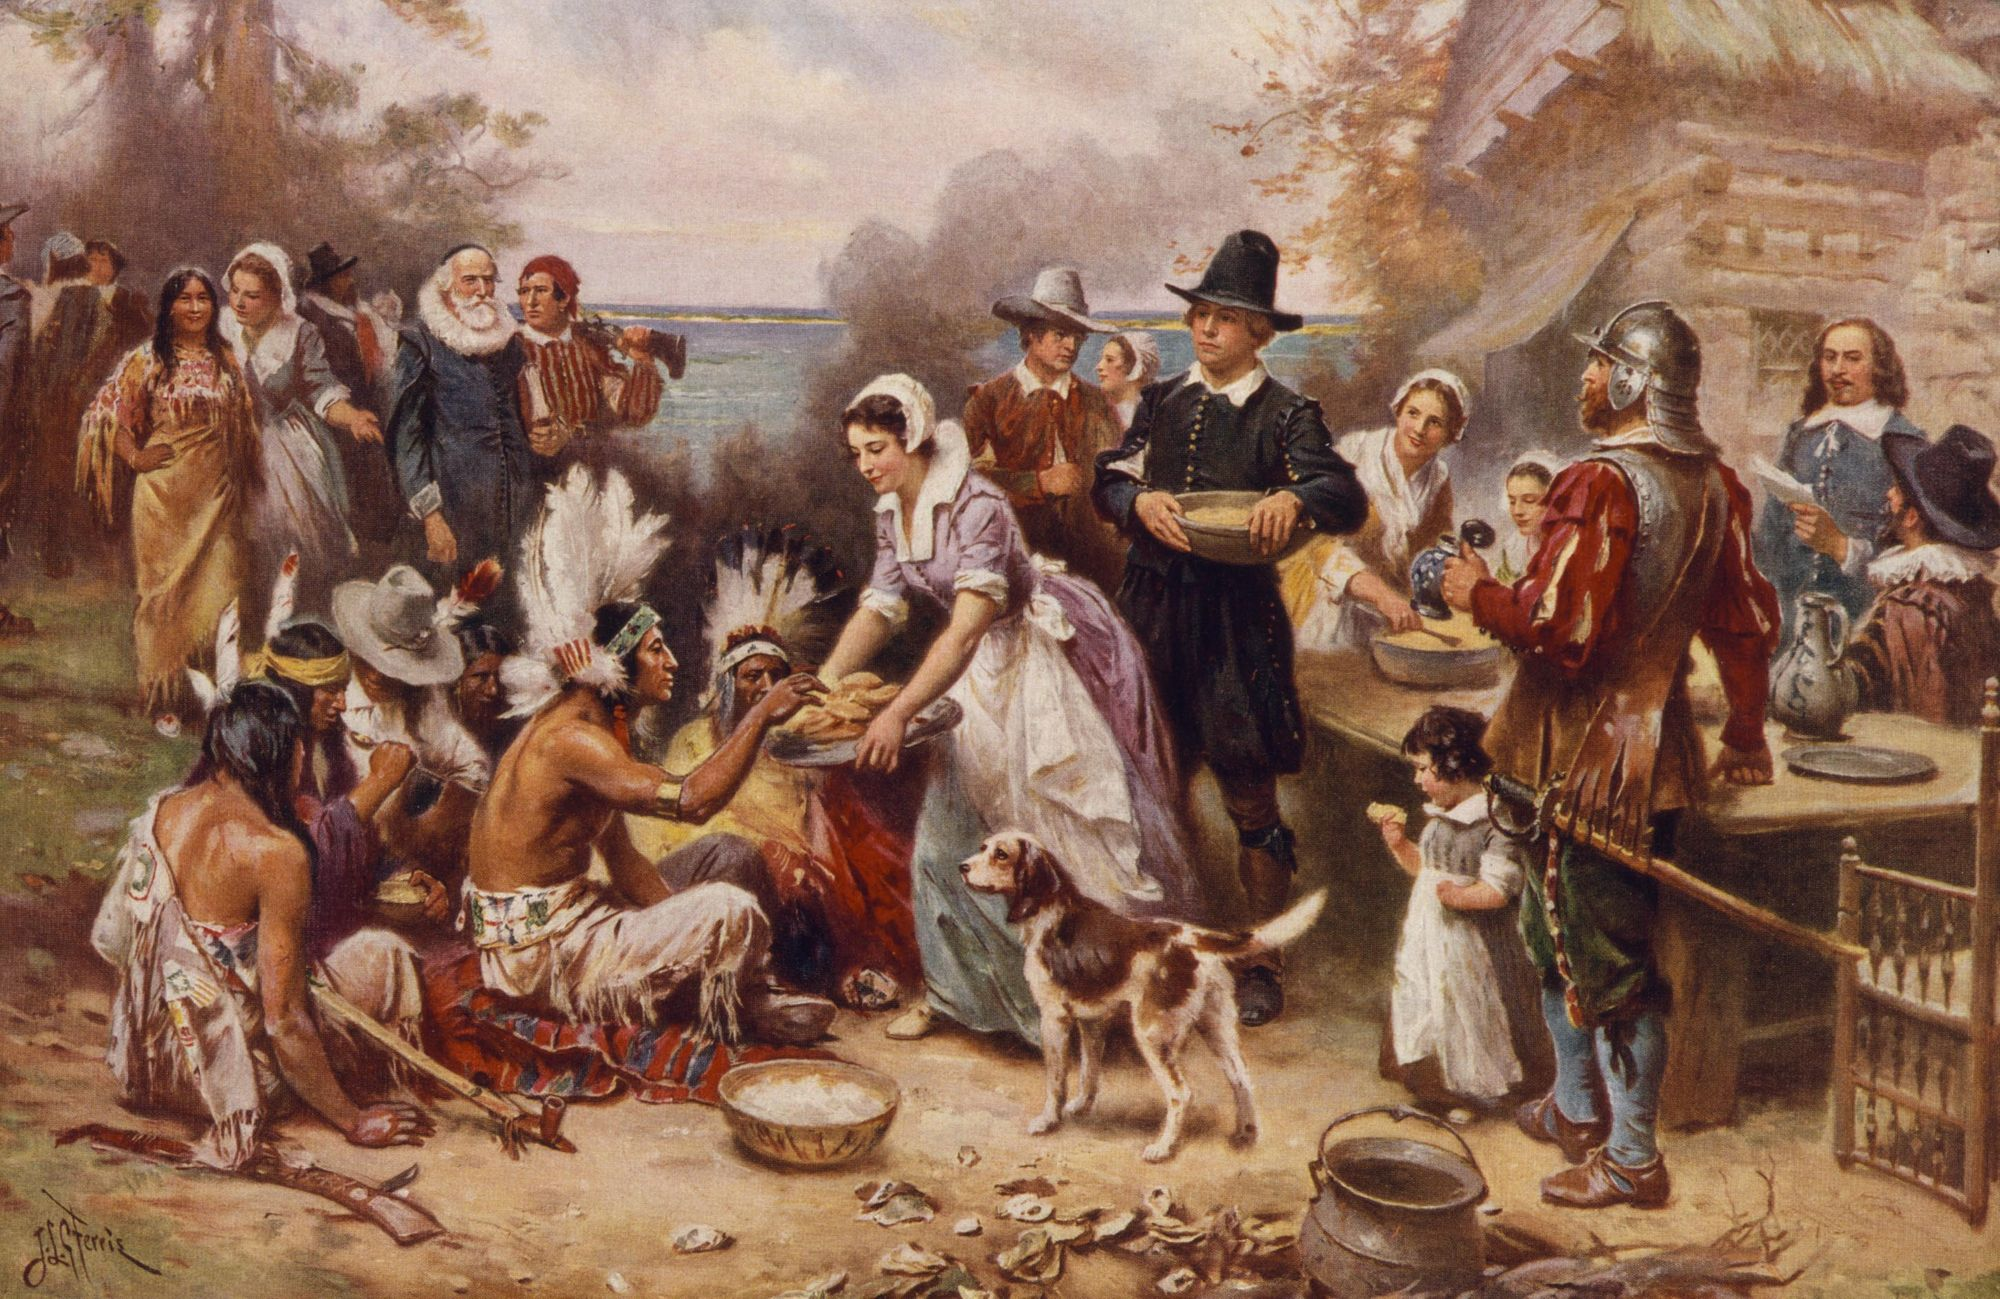 An image showing settlers and native Americans feasting together and mingling with food and drinks. A woman is serving food to the Indian chief and his henchmen